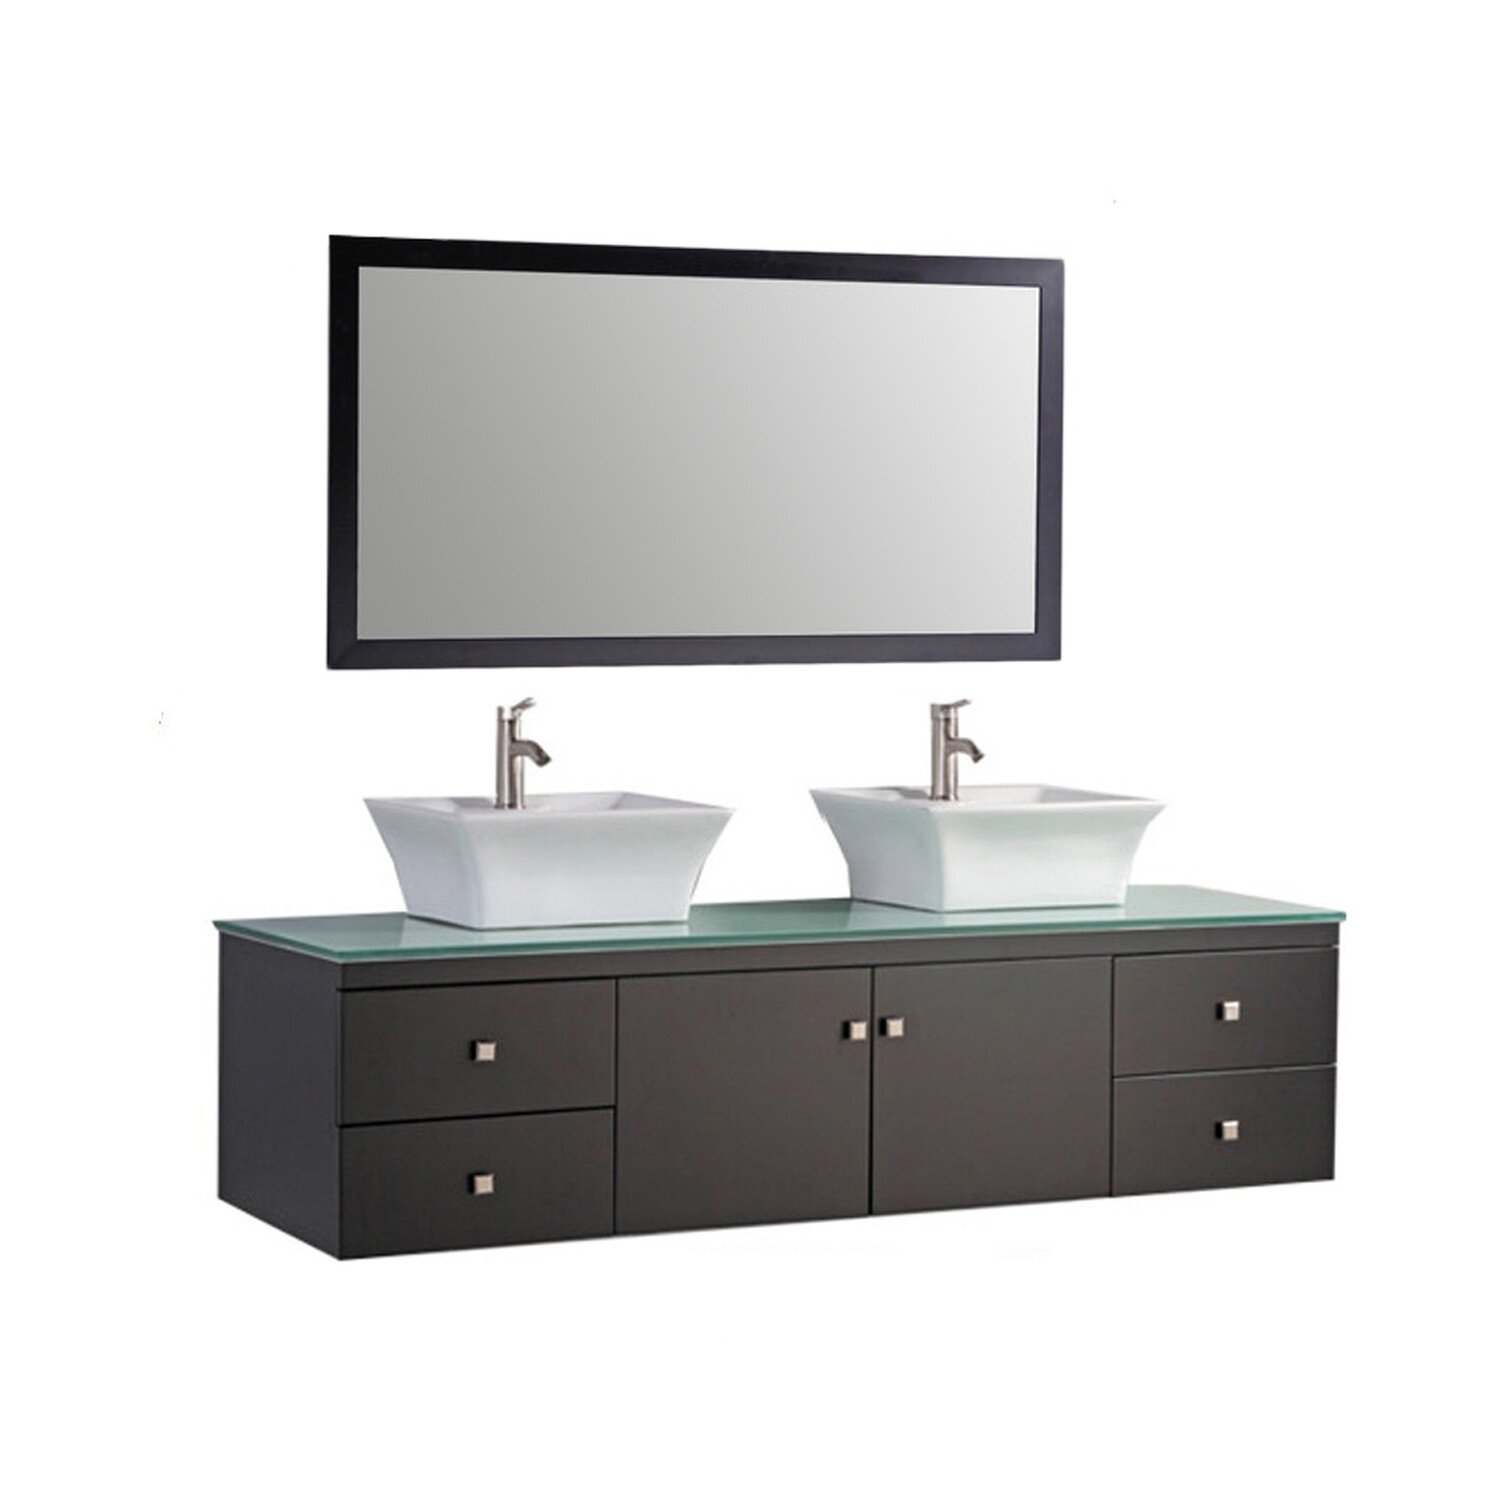 Mtdvanities Nepal 72 Floating Double Bathroom Vanity Set